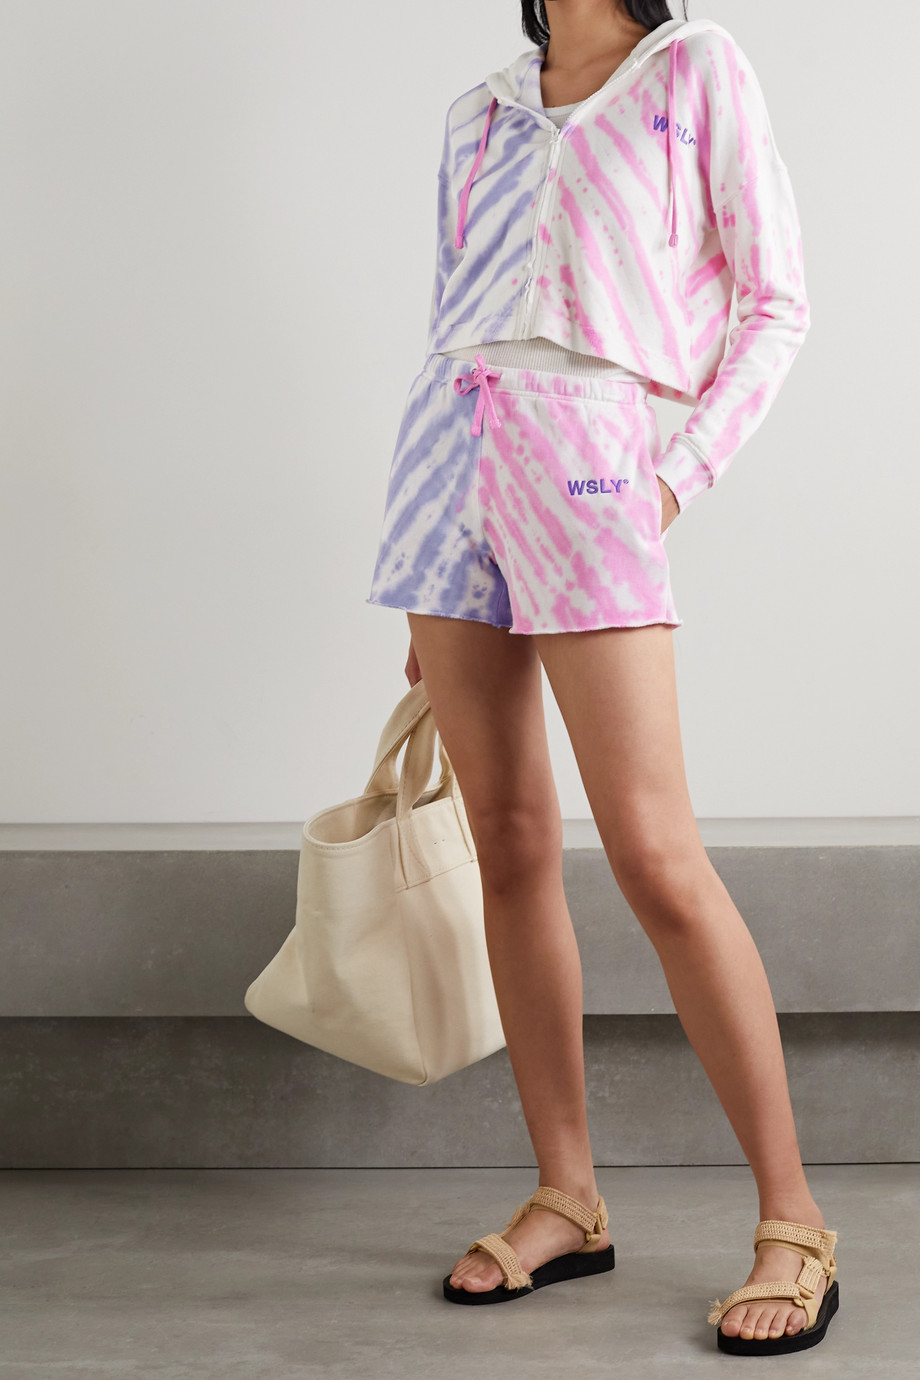 WSLY The Ecosoft tie-dyed organic cotton-blend jersey shorts